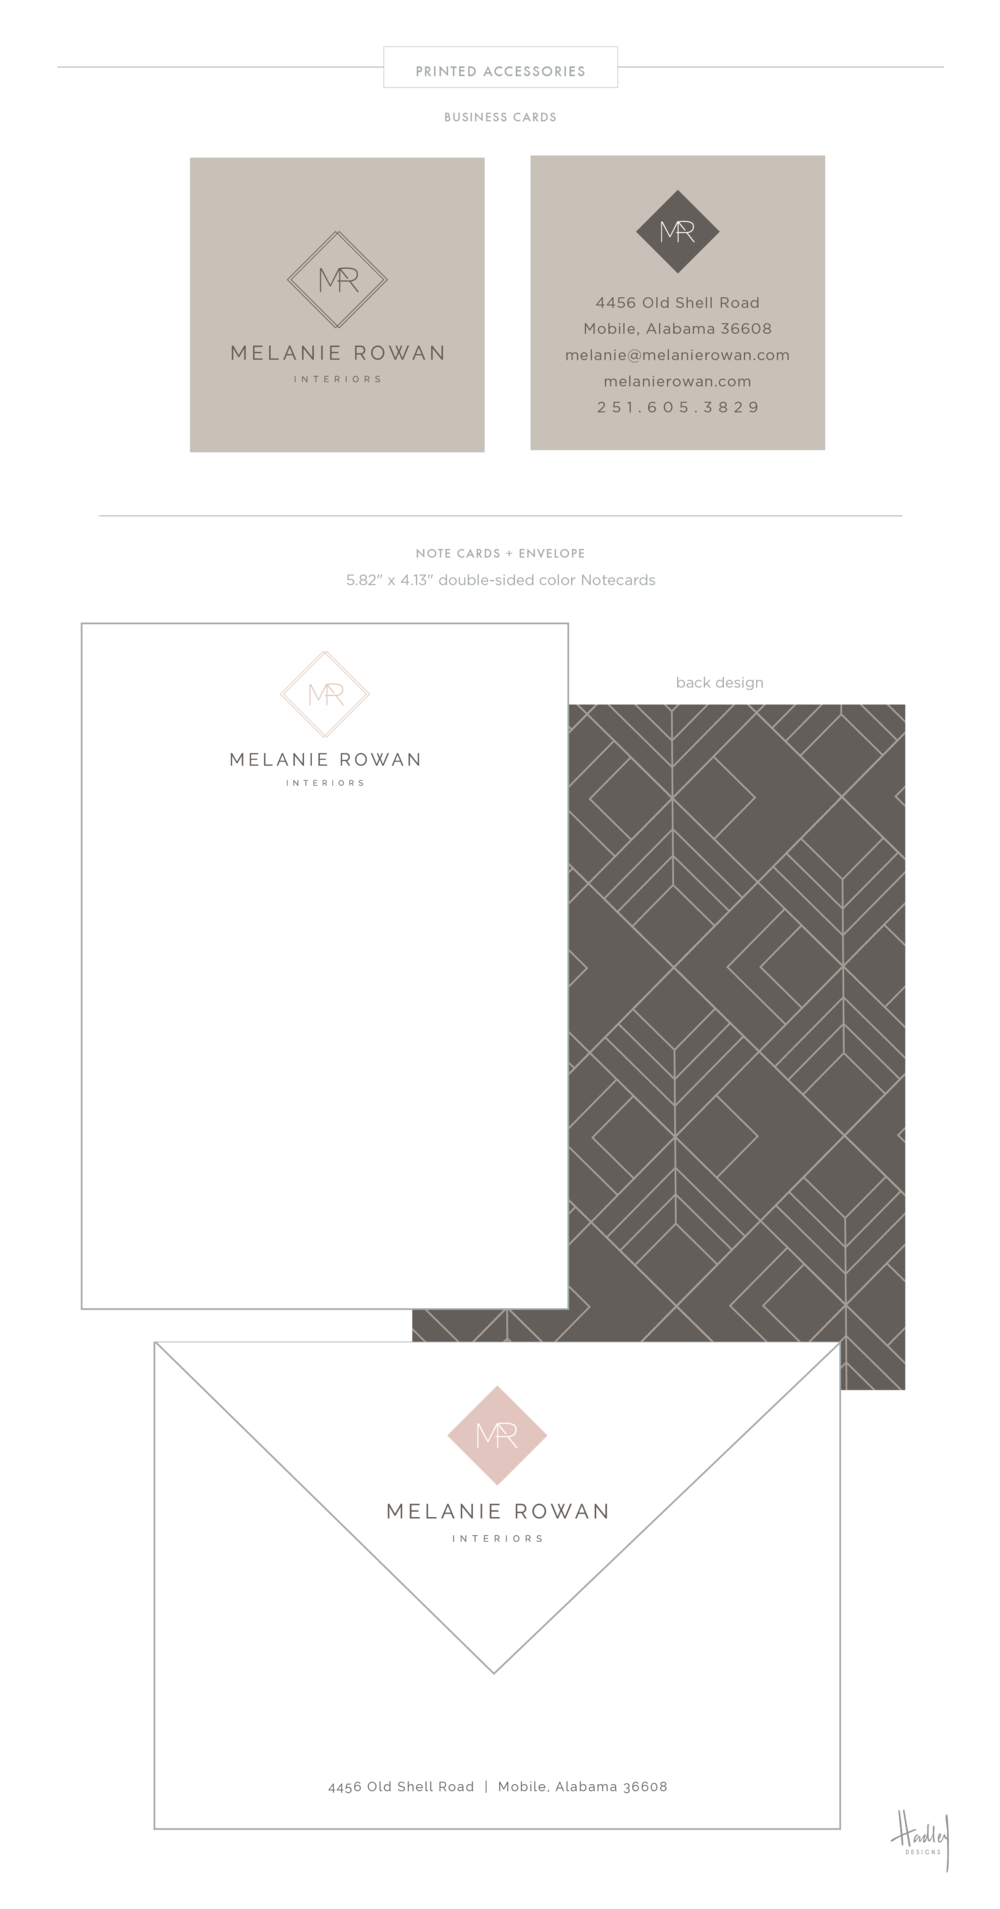 MelanieRowan_Stationery_Final.png